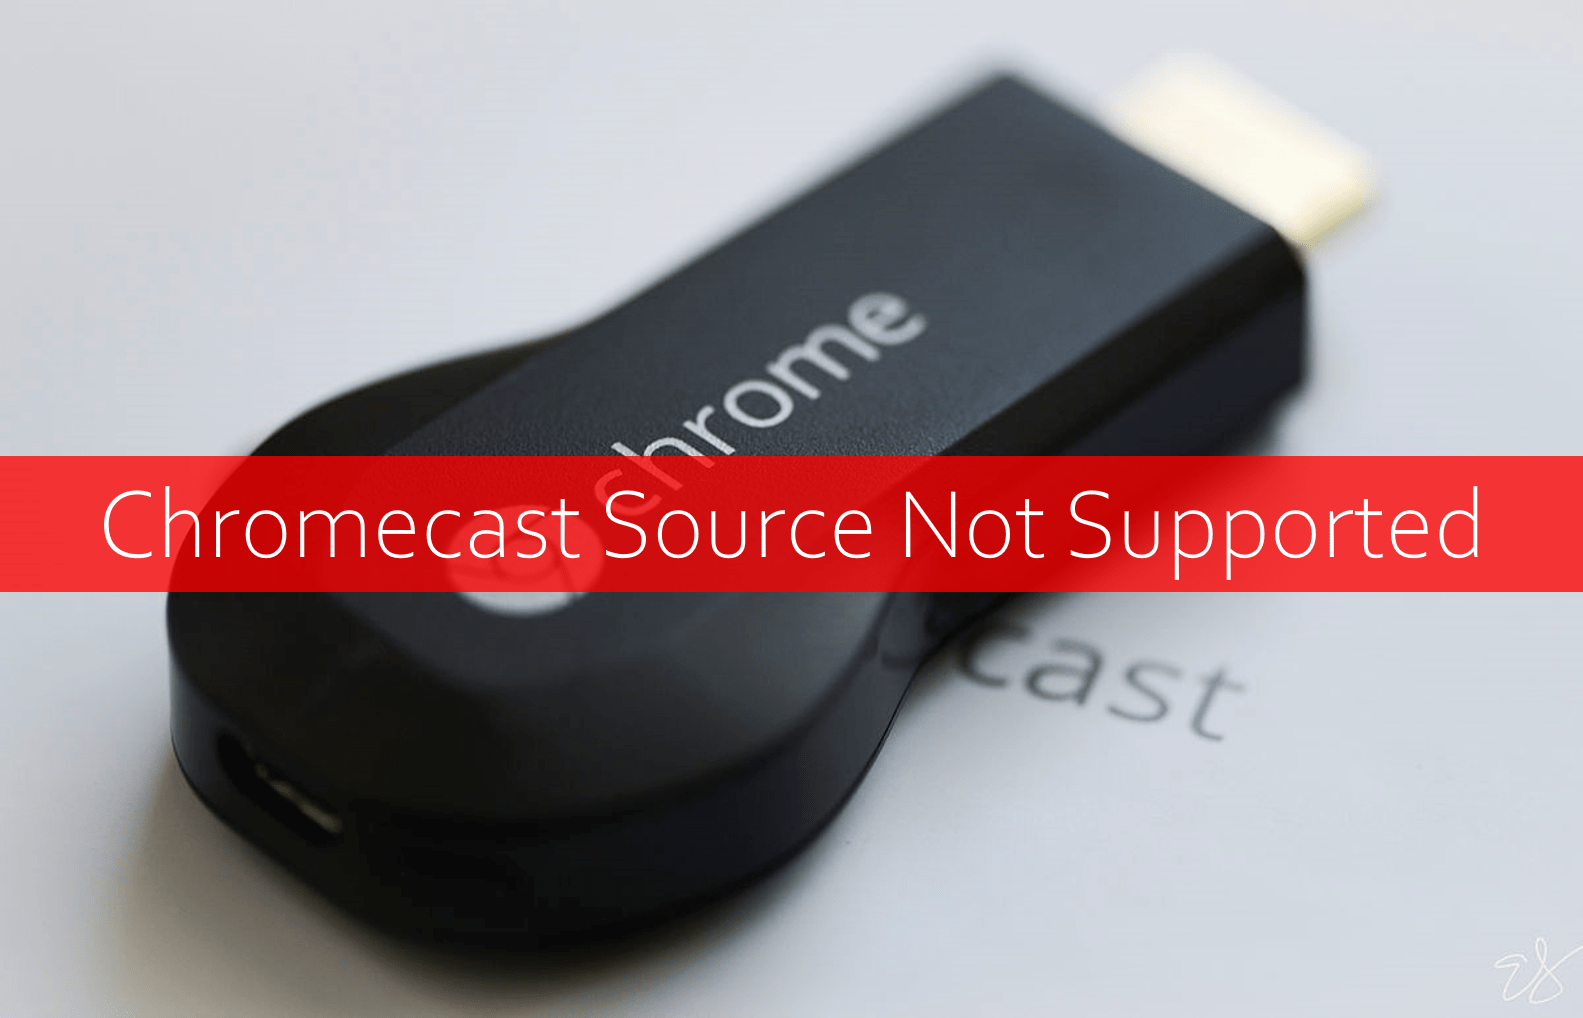 chromecast source not supported